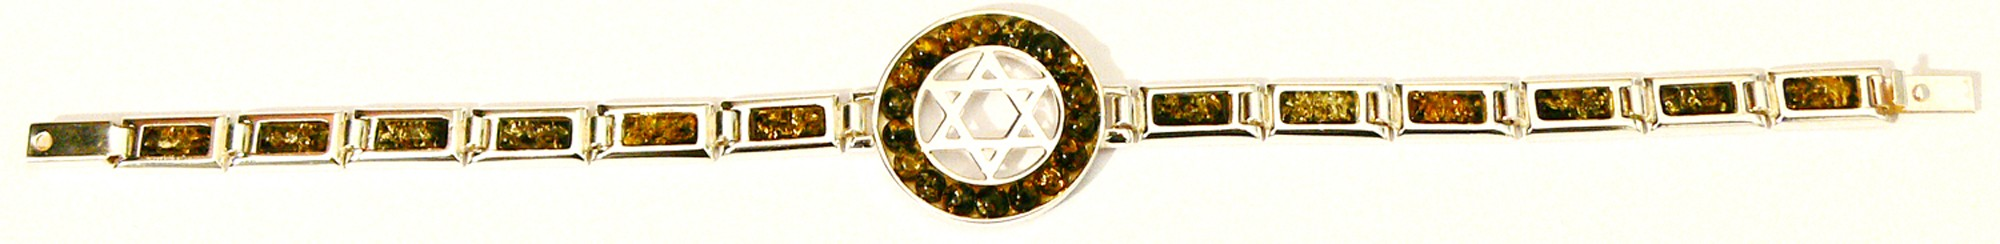 Green Baltic amber bracelet with sterling silver Jewish star